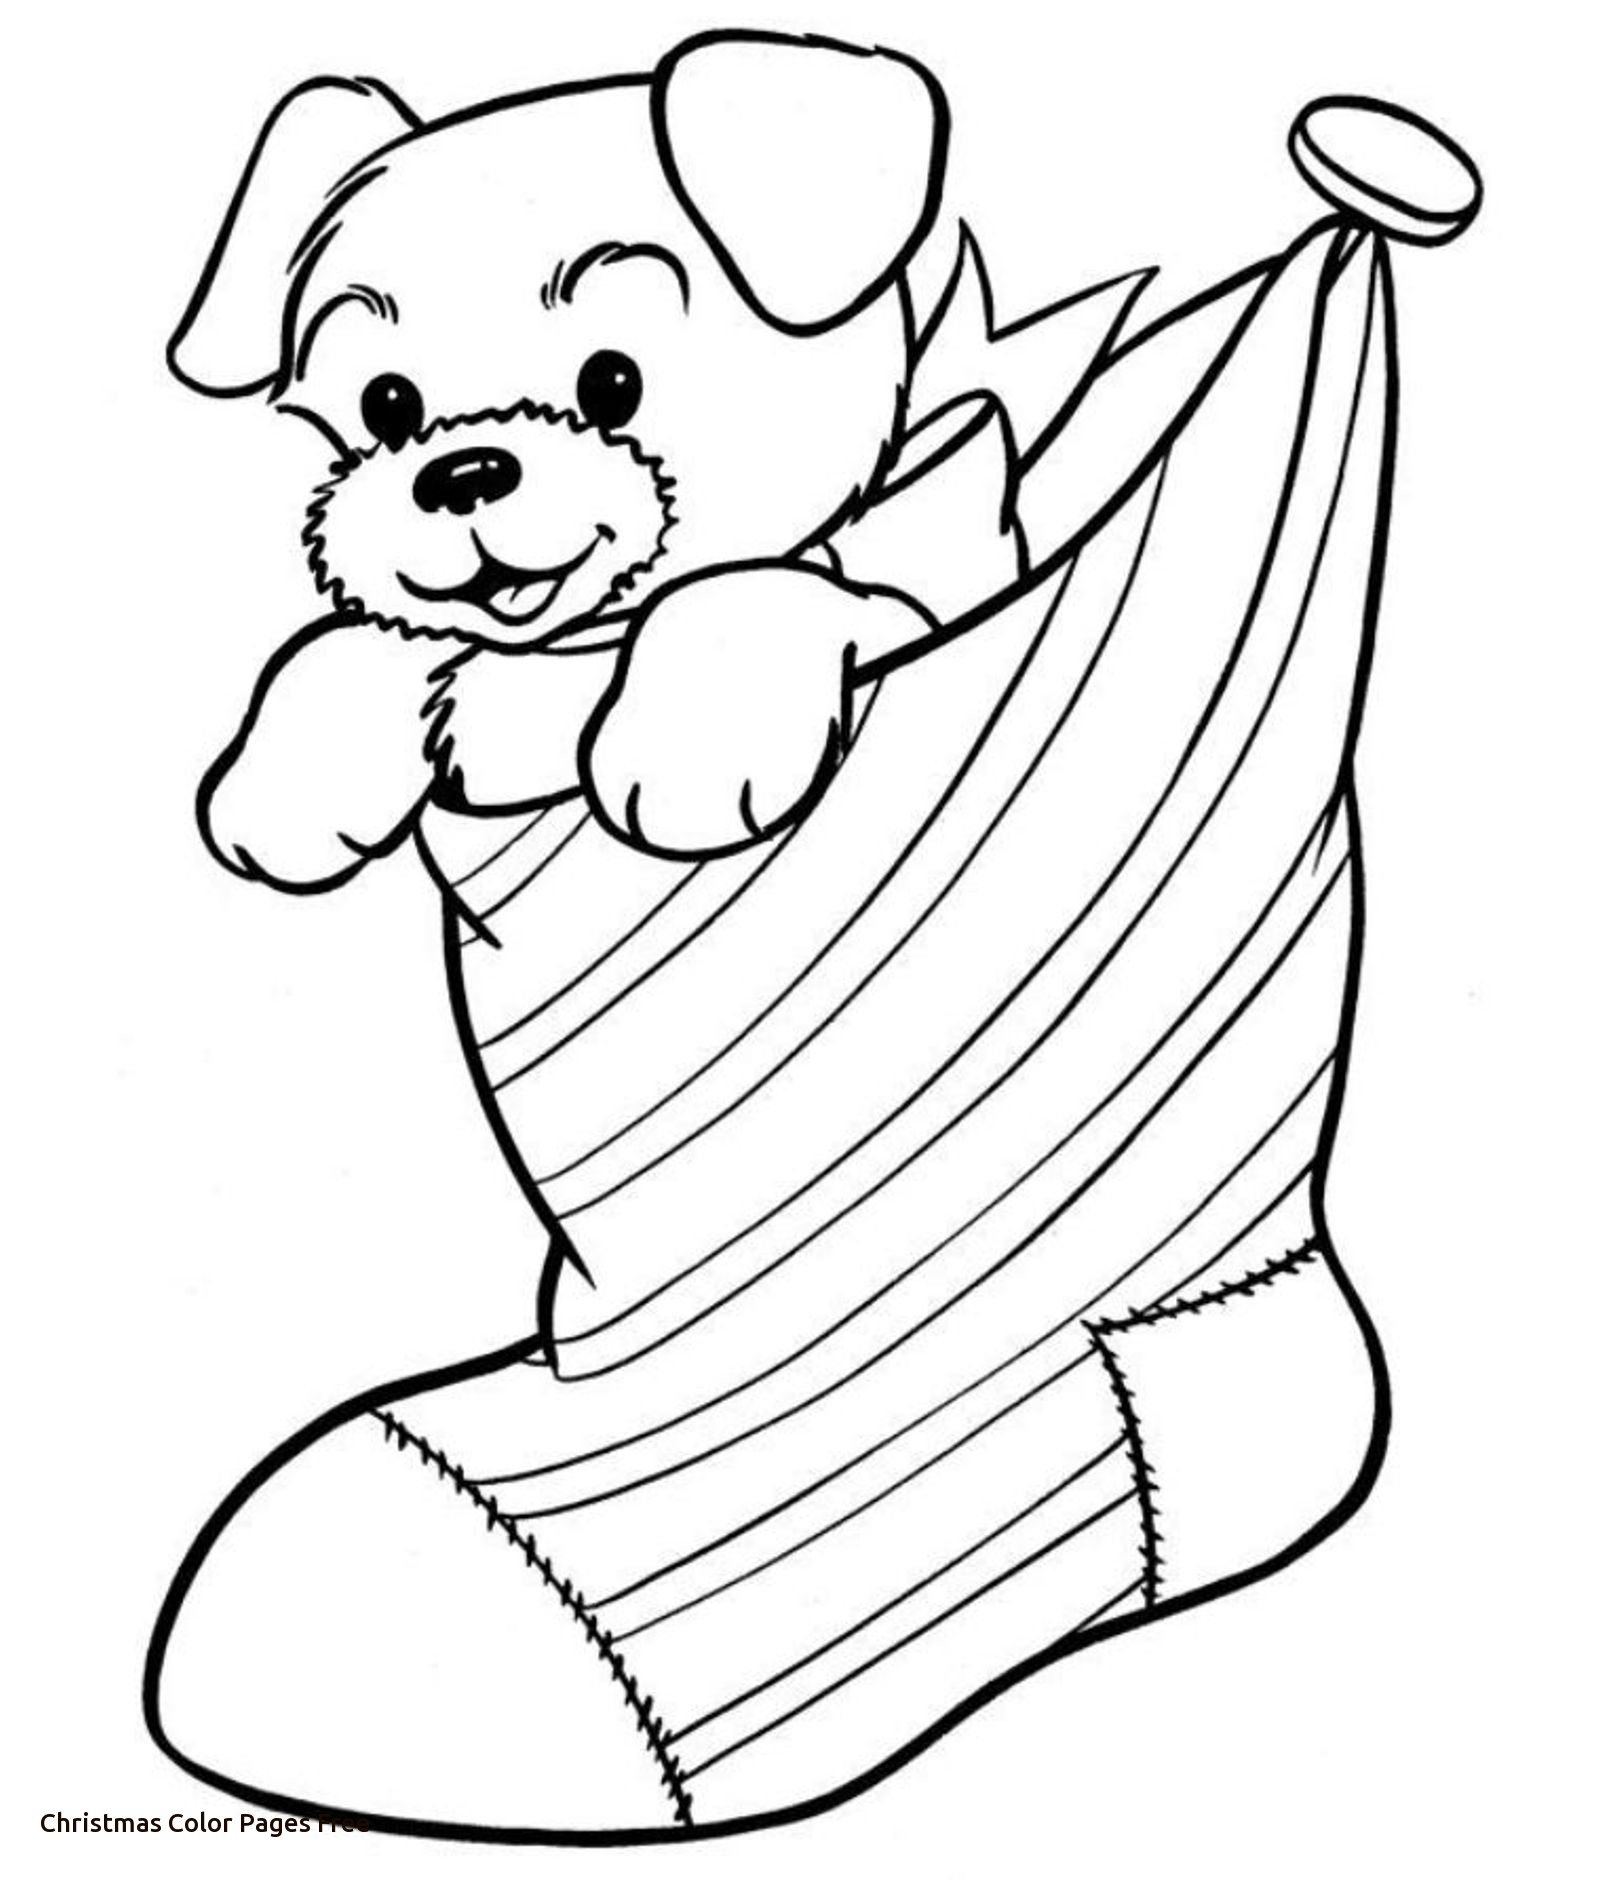 1620x1880 Christmas Coloring Pages For Kids Candy Canes Of Christmas Color